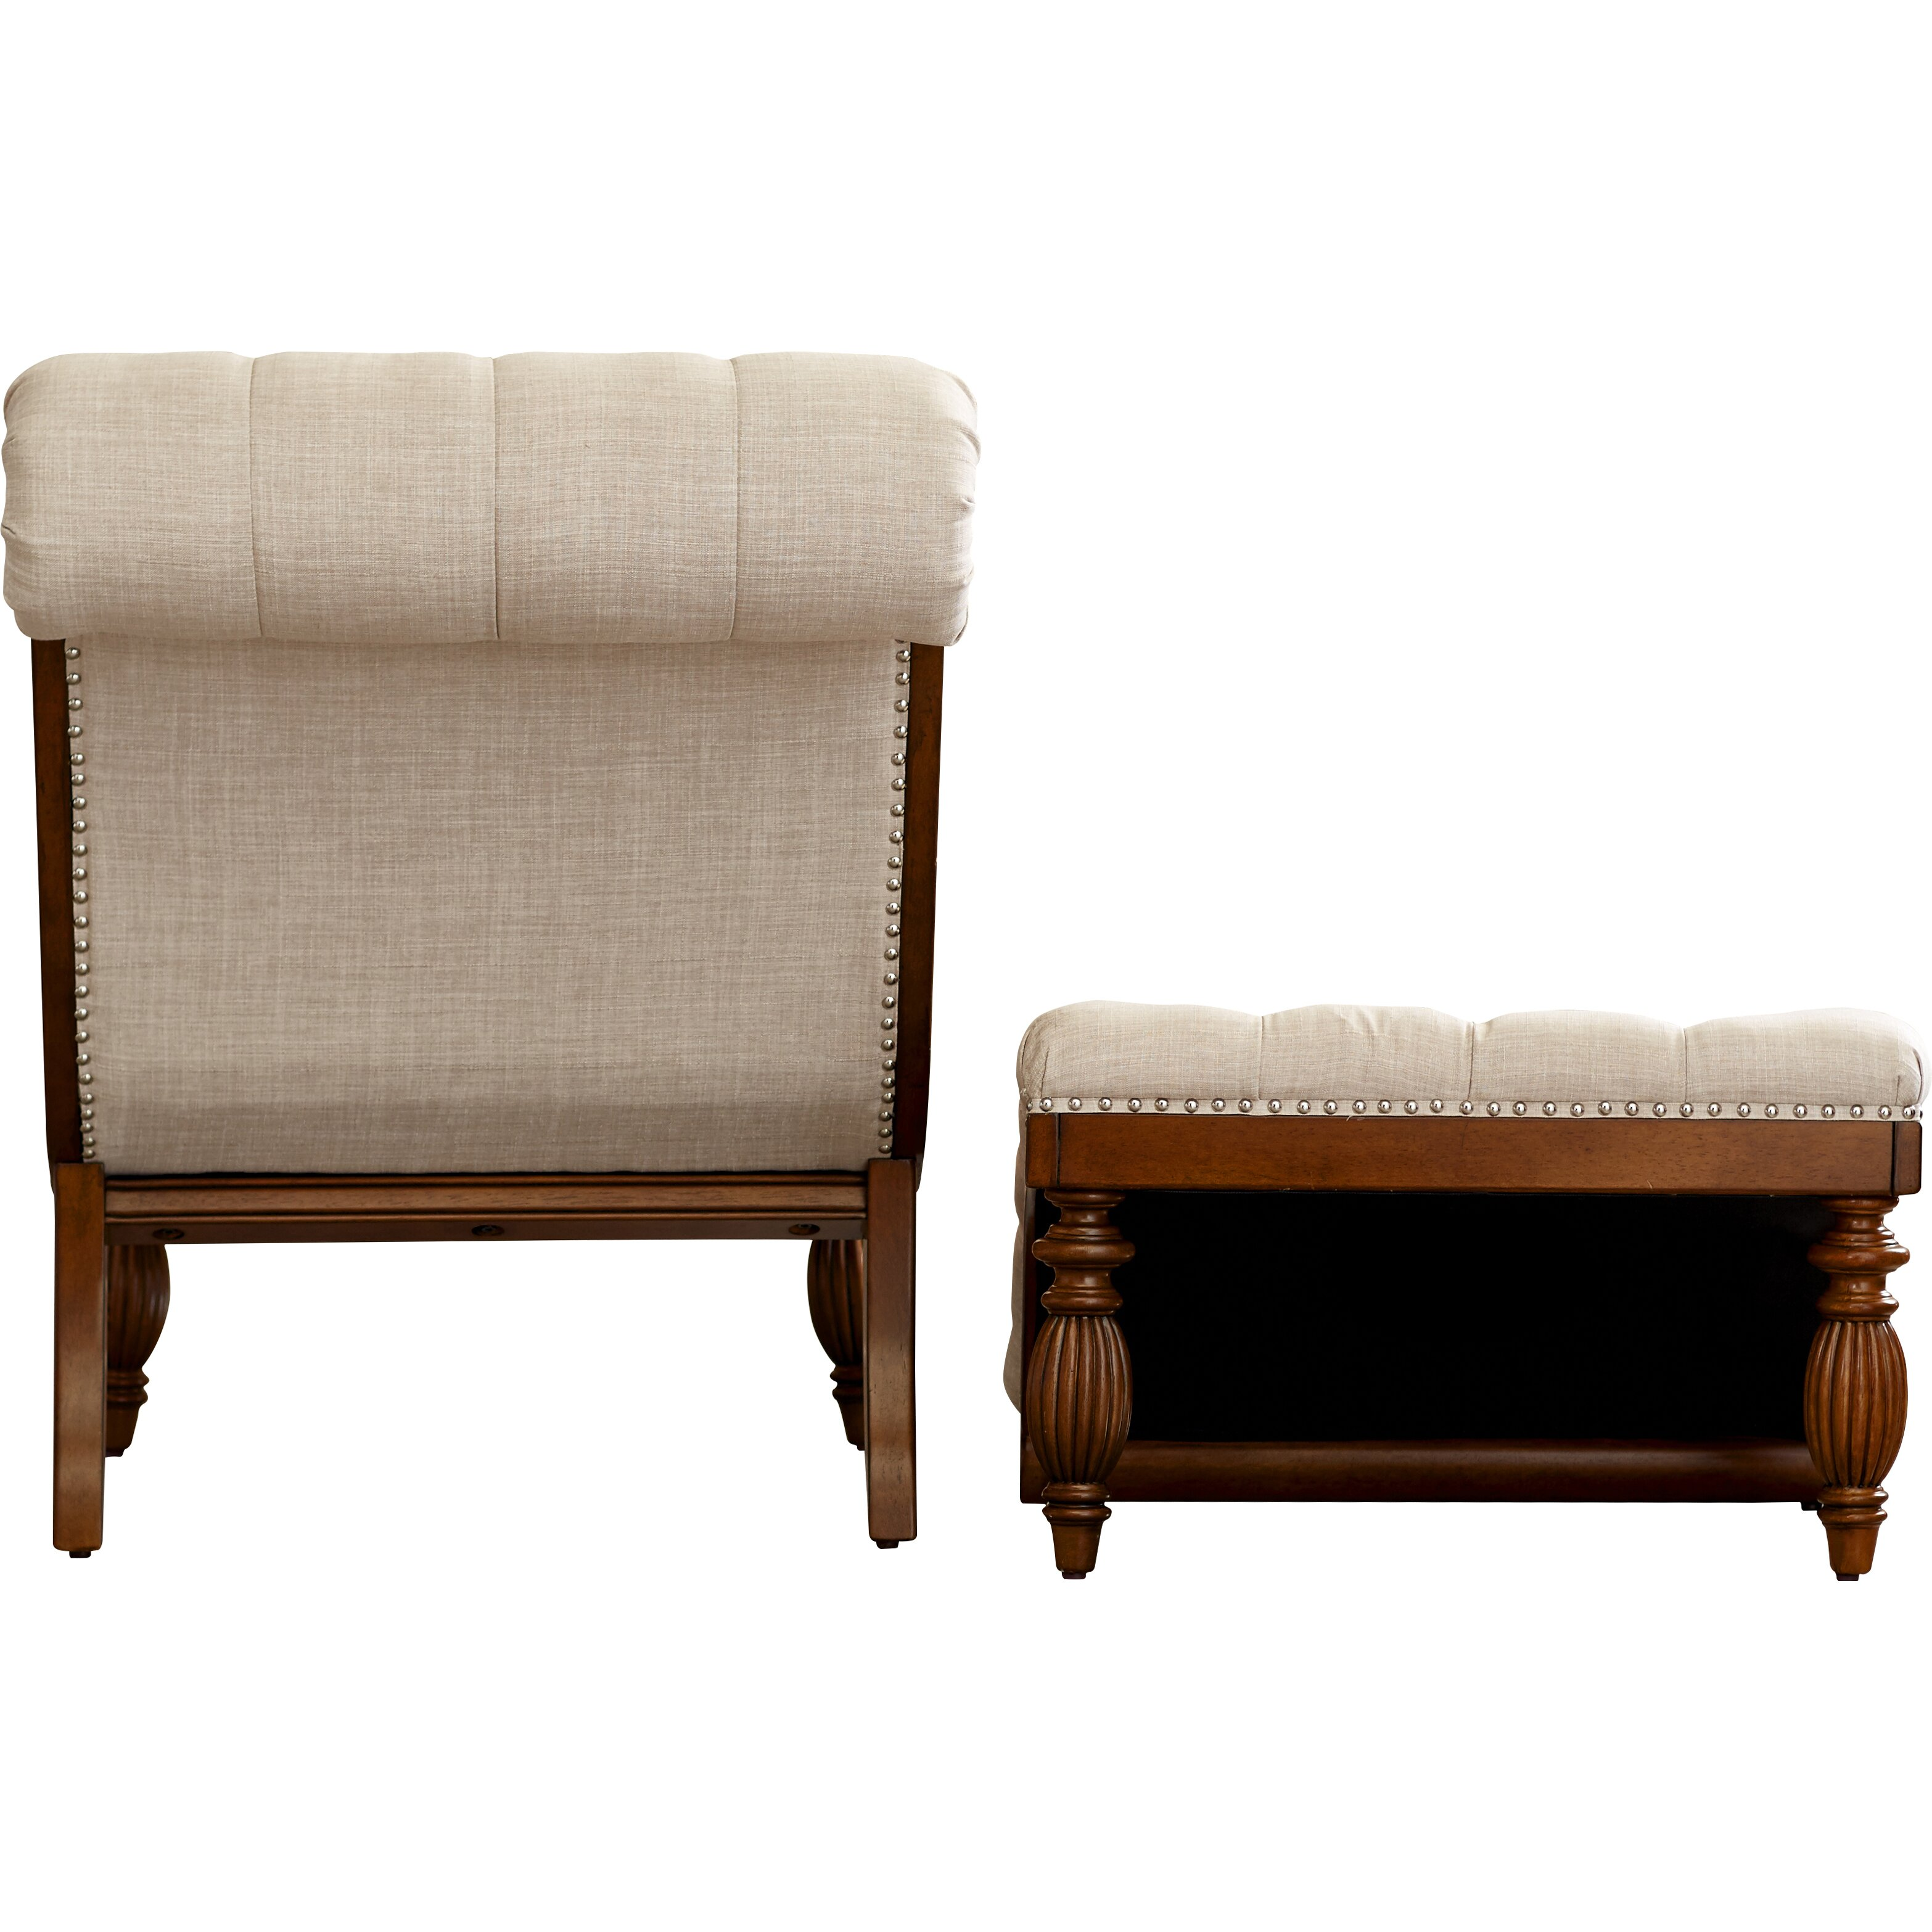 Lark manor celya chaise lounge and ottoman set reviews for Chaise and ottoman